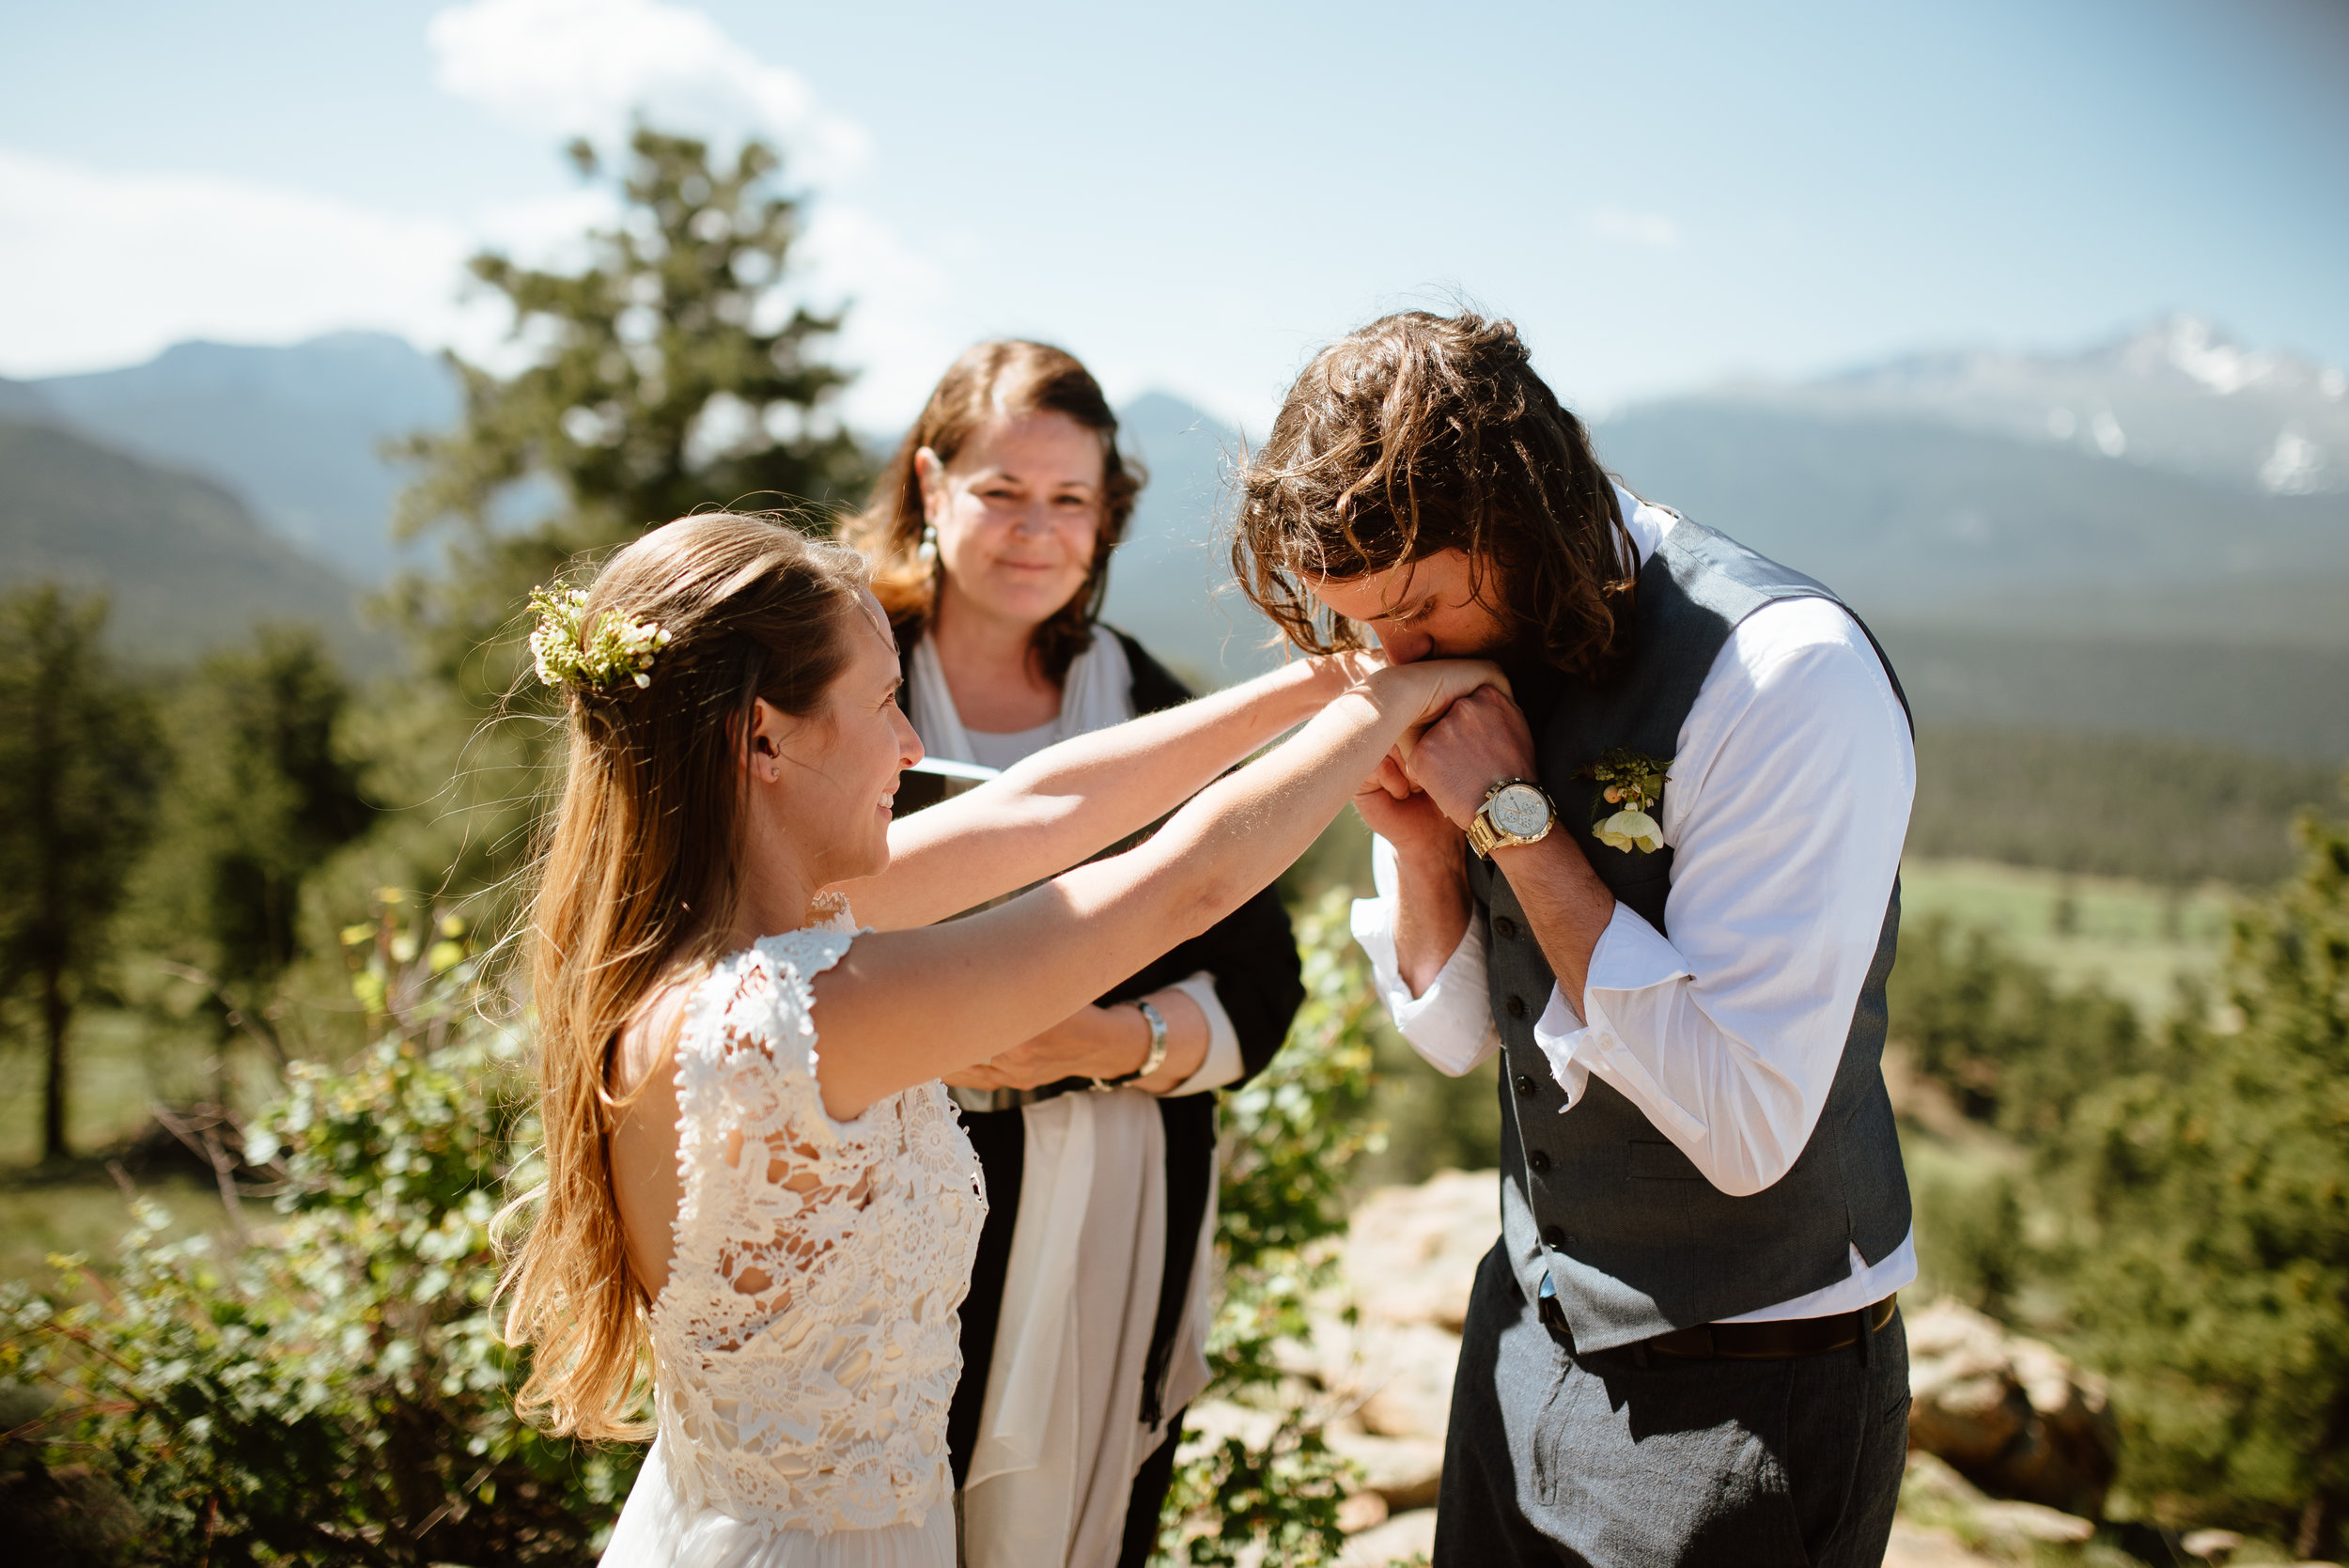 It really doesn't get much better than this intimate mountain wedding at 3m curve in Rocky Mountain National park! I love how sweet and casual this couple is! | Adventure elopement photos by Colorado mountain wedding photographer, Maddie Mae.